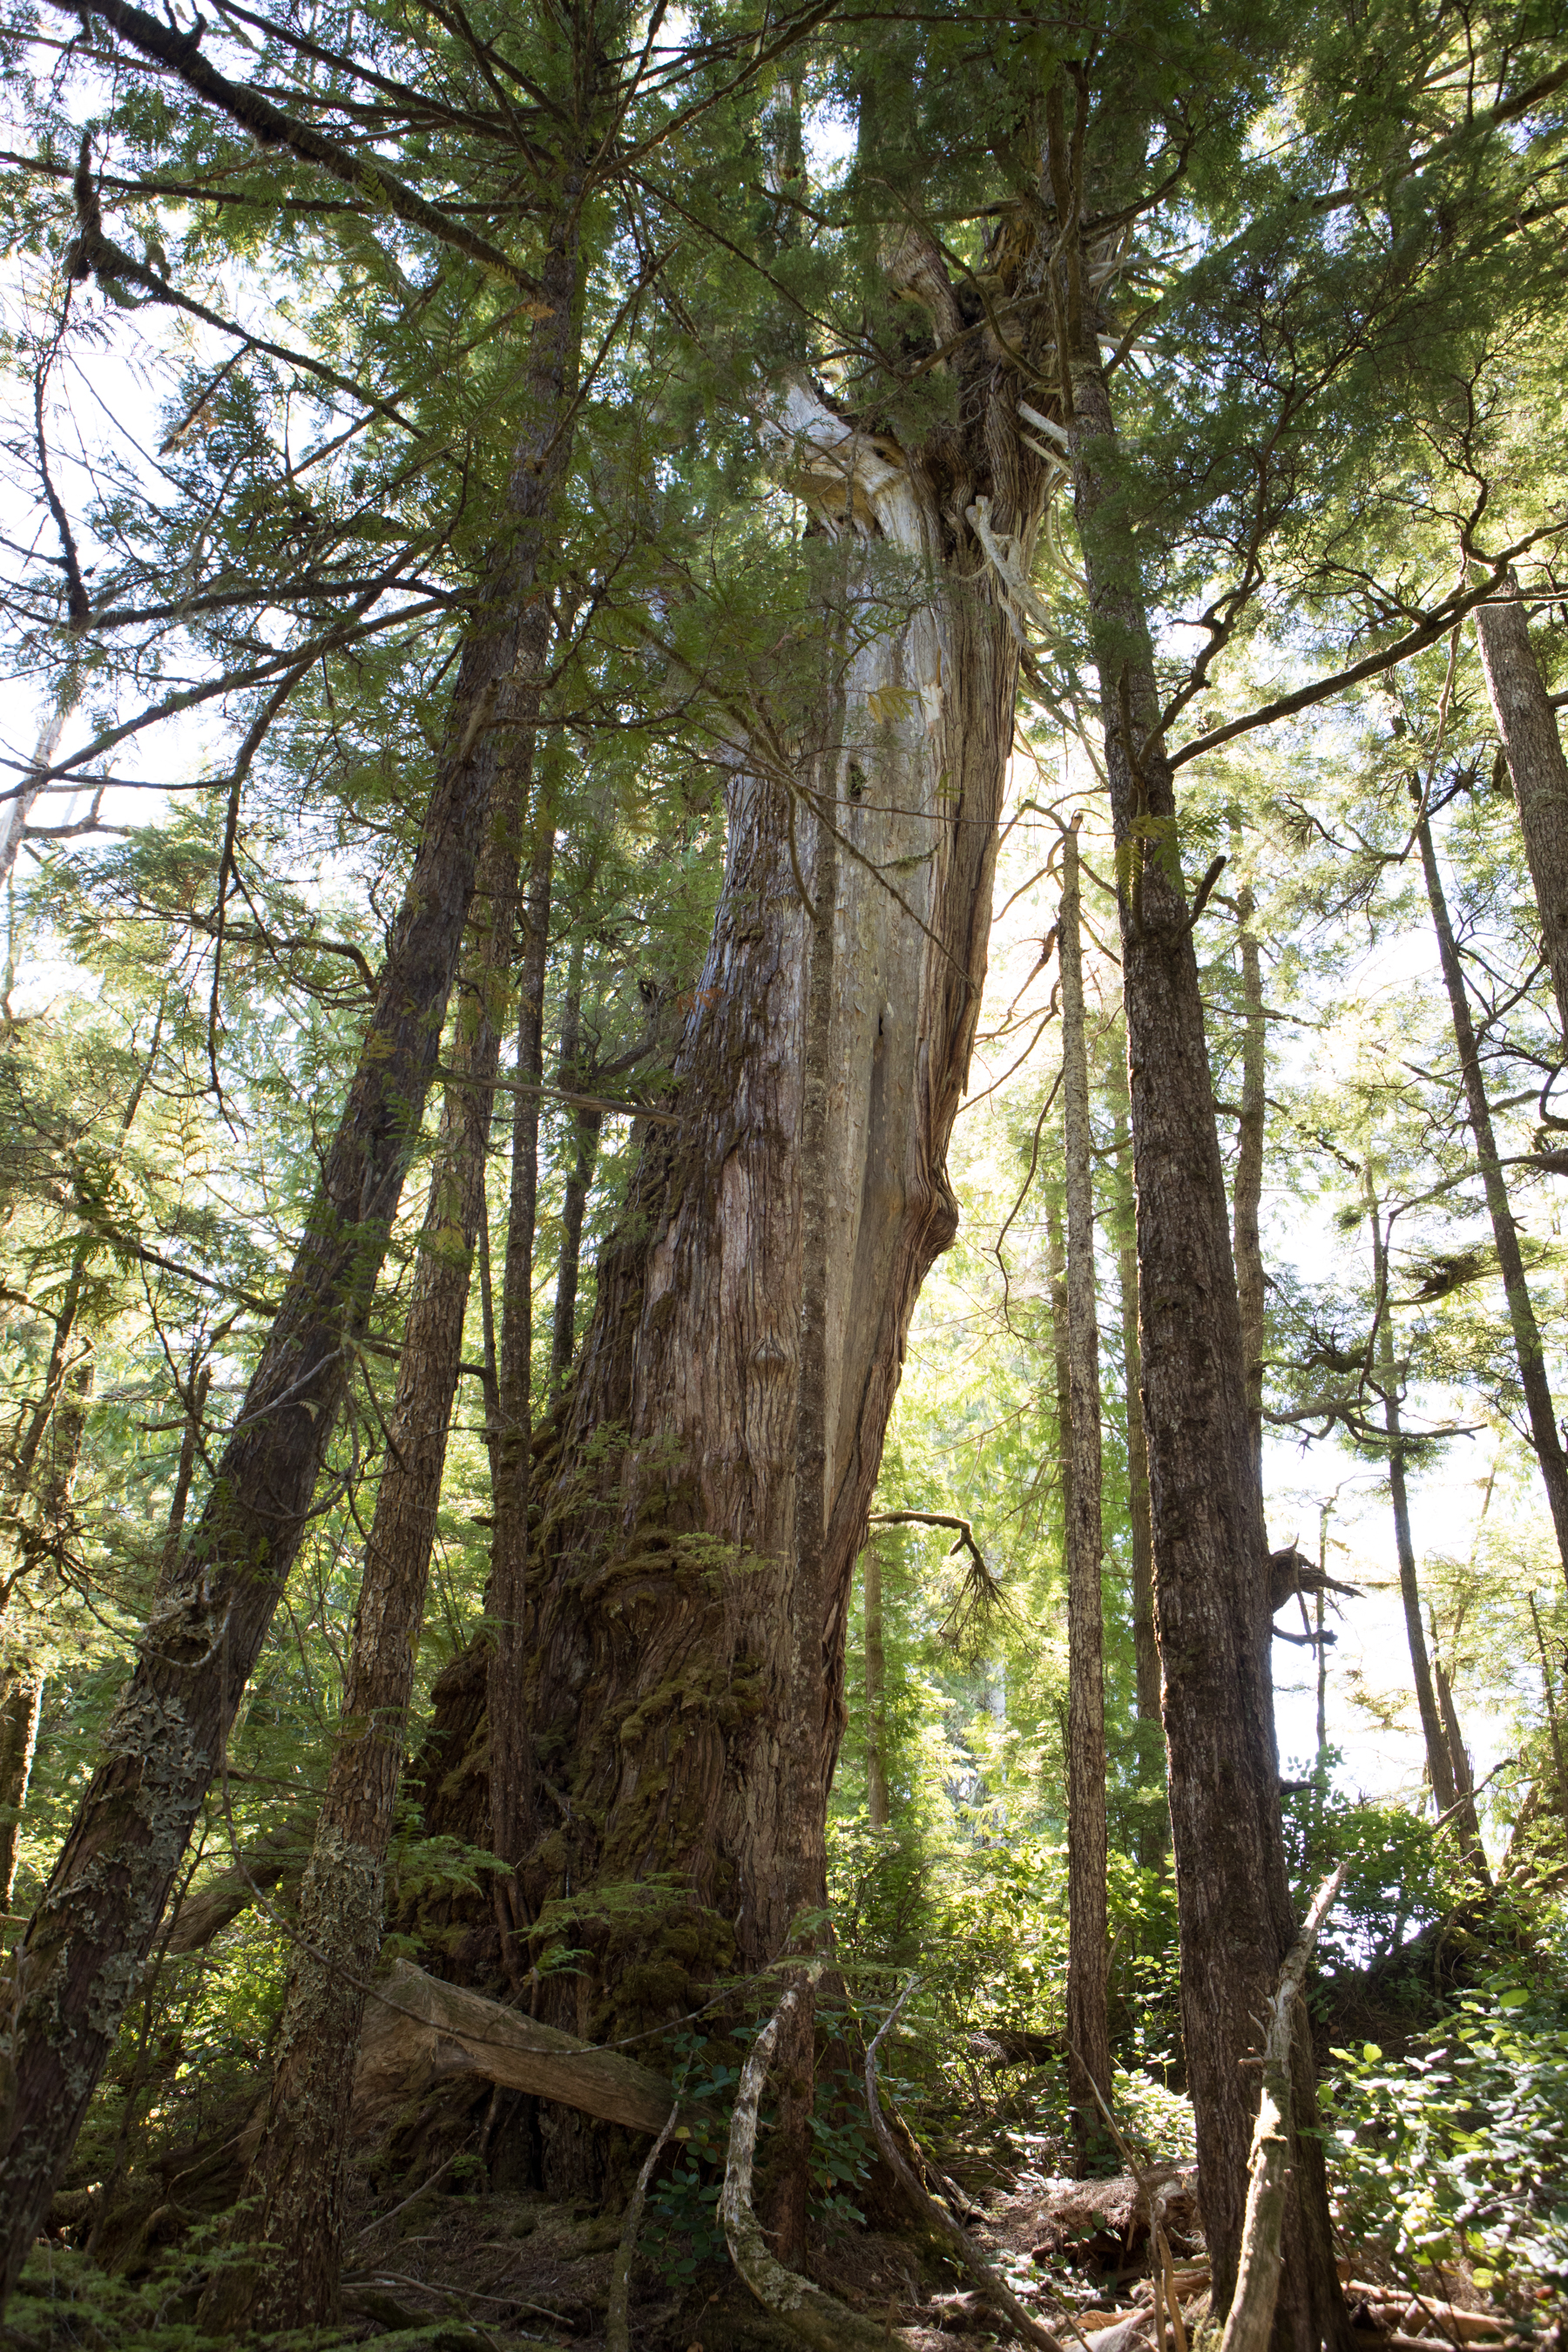 Tall Cedars. As a designated Wilderness Area, we were able to enjoy forested land that had not been logged.